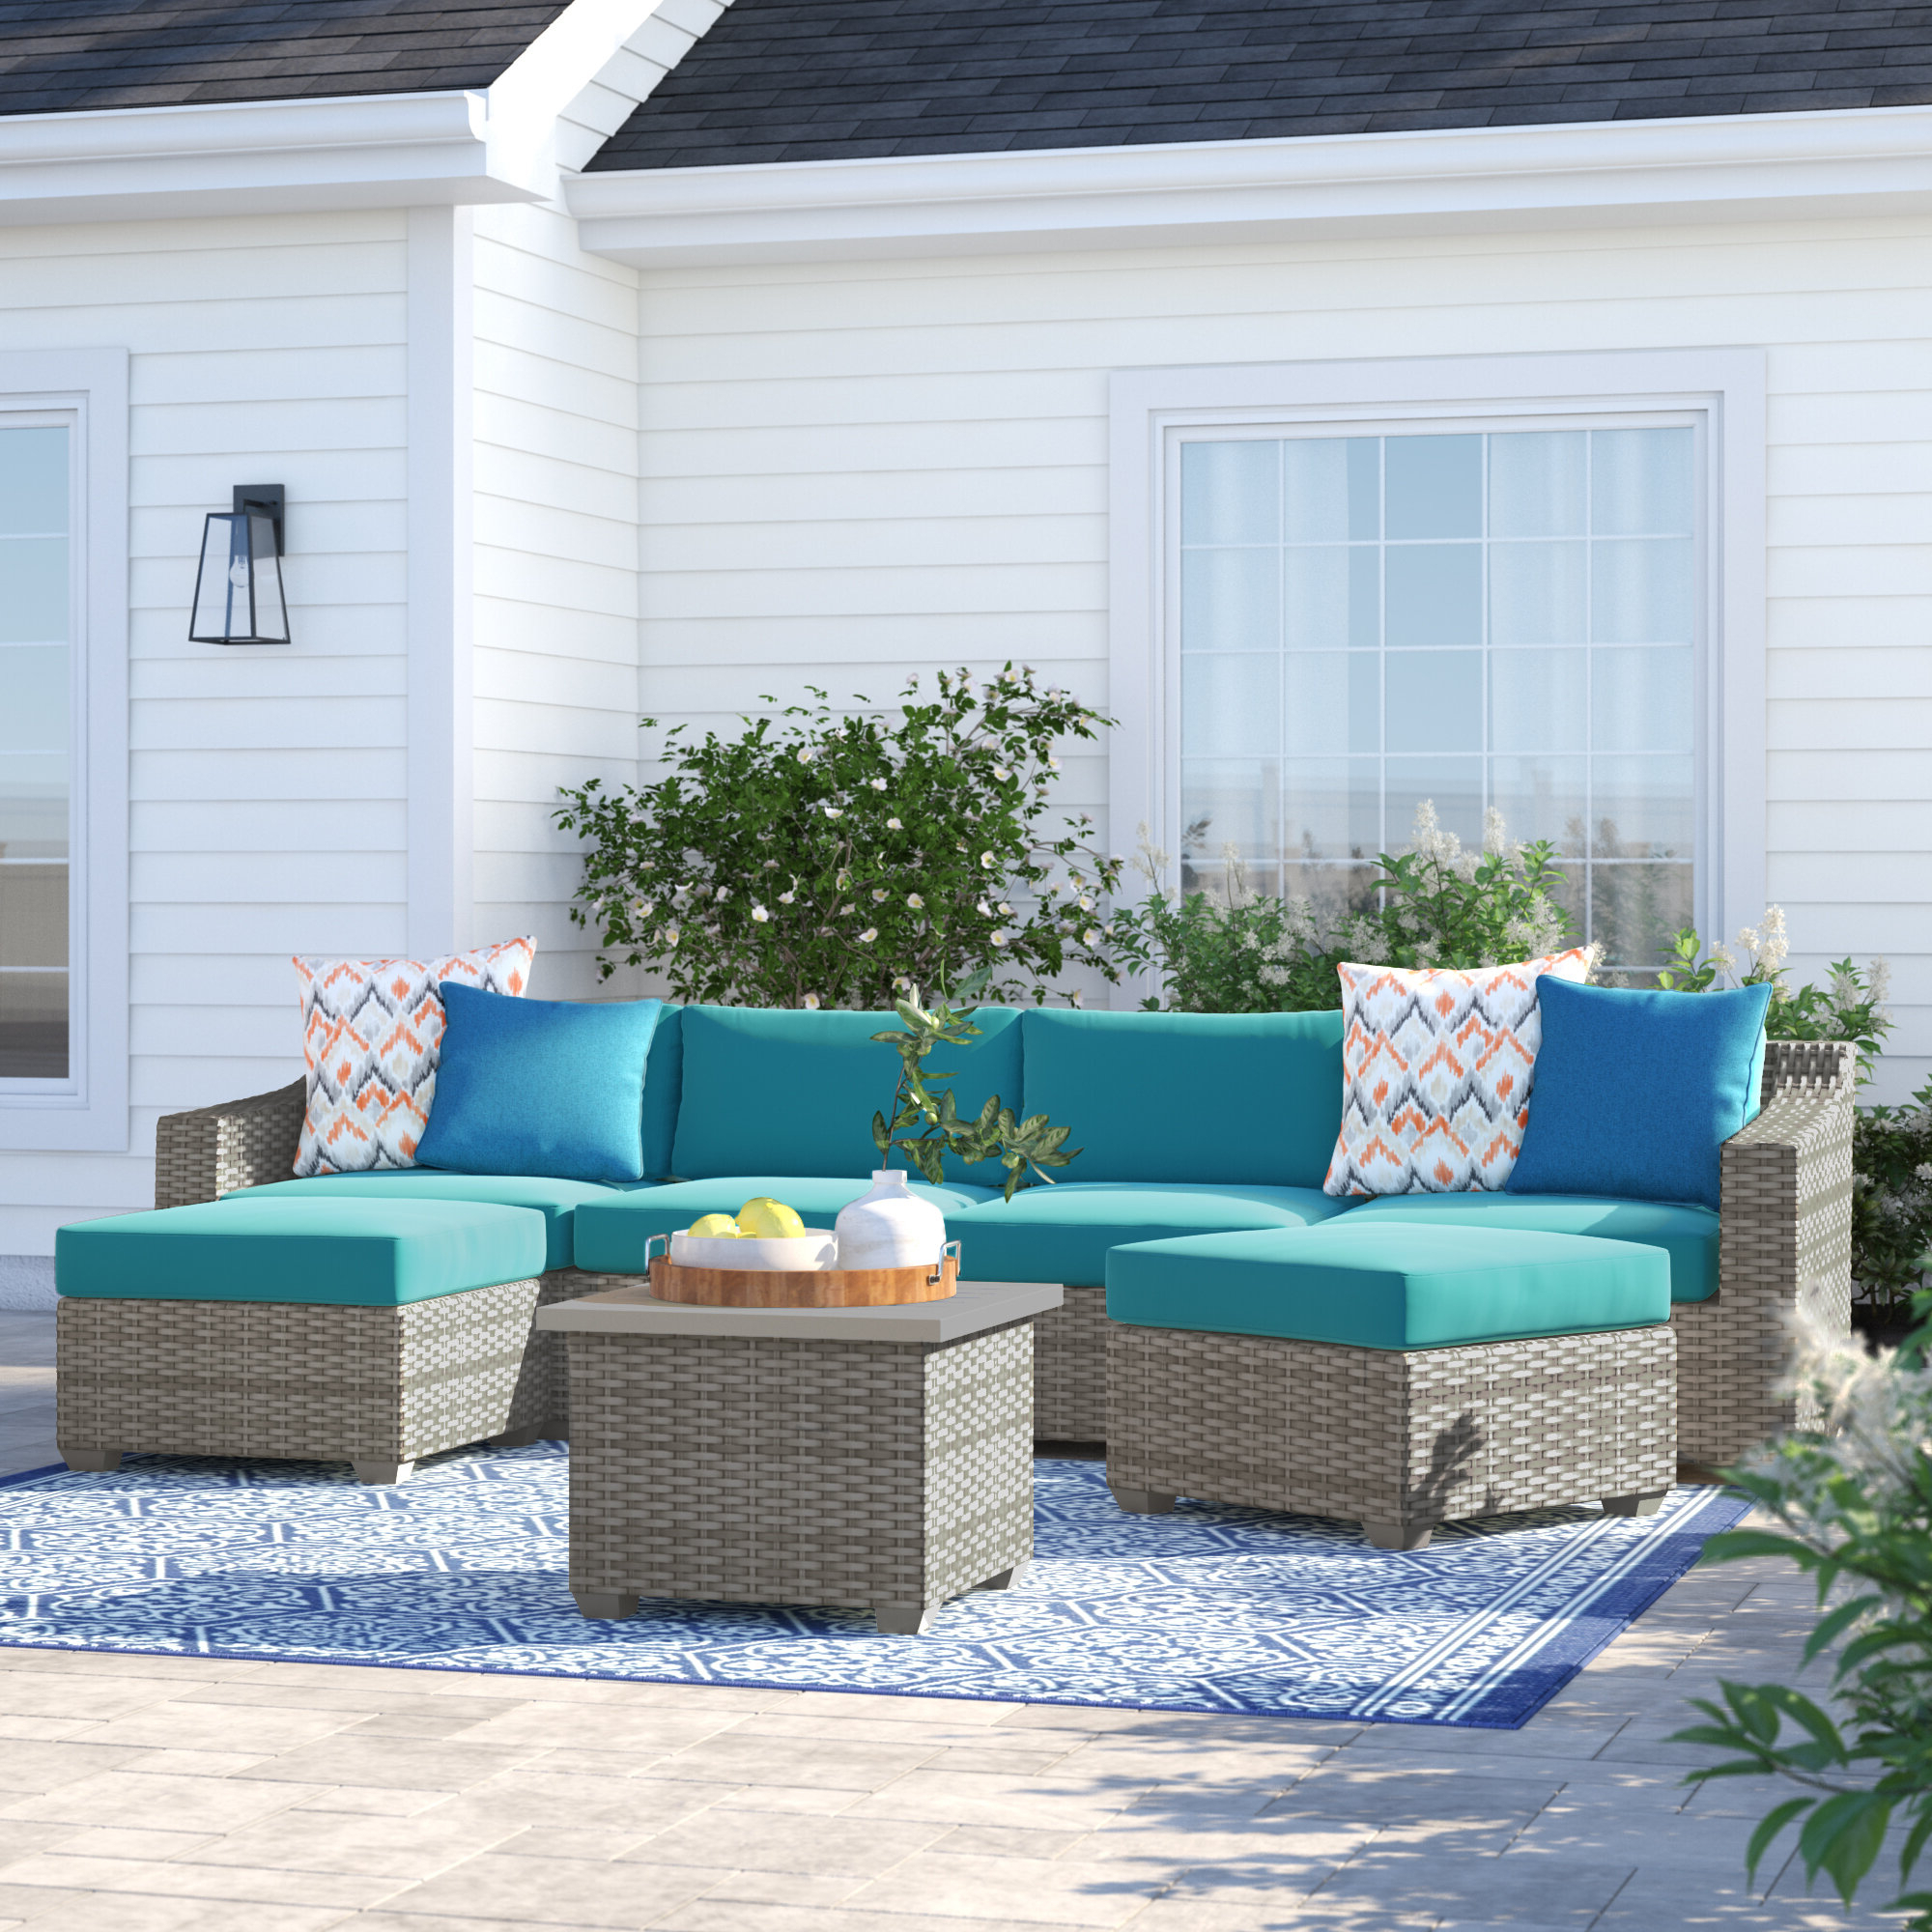 Most Recently Released Falmouth Patio Daybeds With Cushions In Falmouth 7 Piece Sectional Seating Group With Cushions (View 12 of 20)